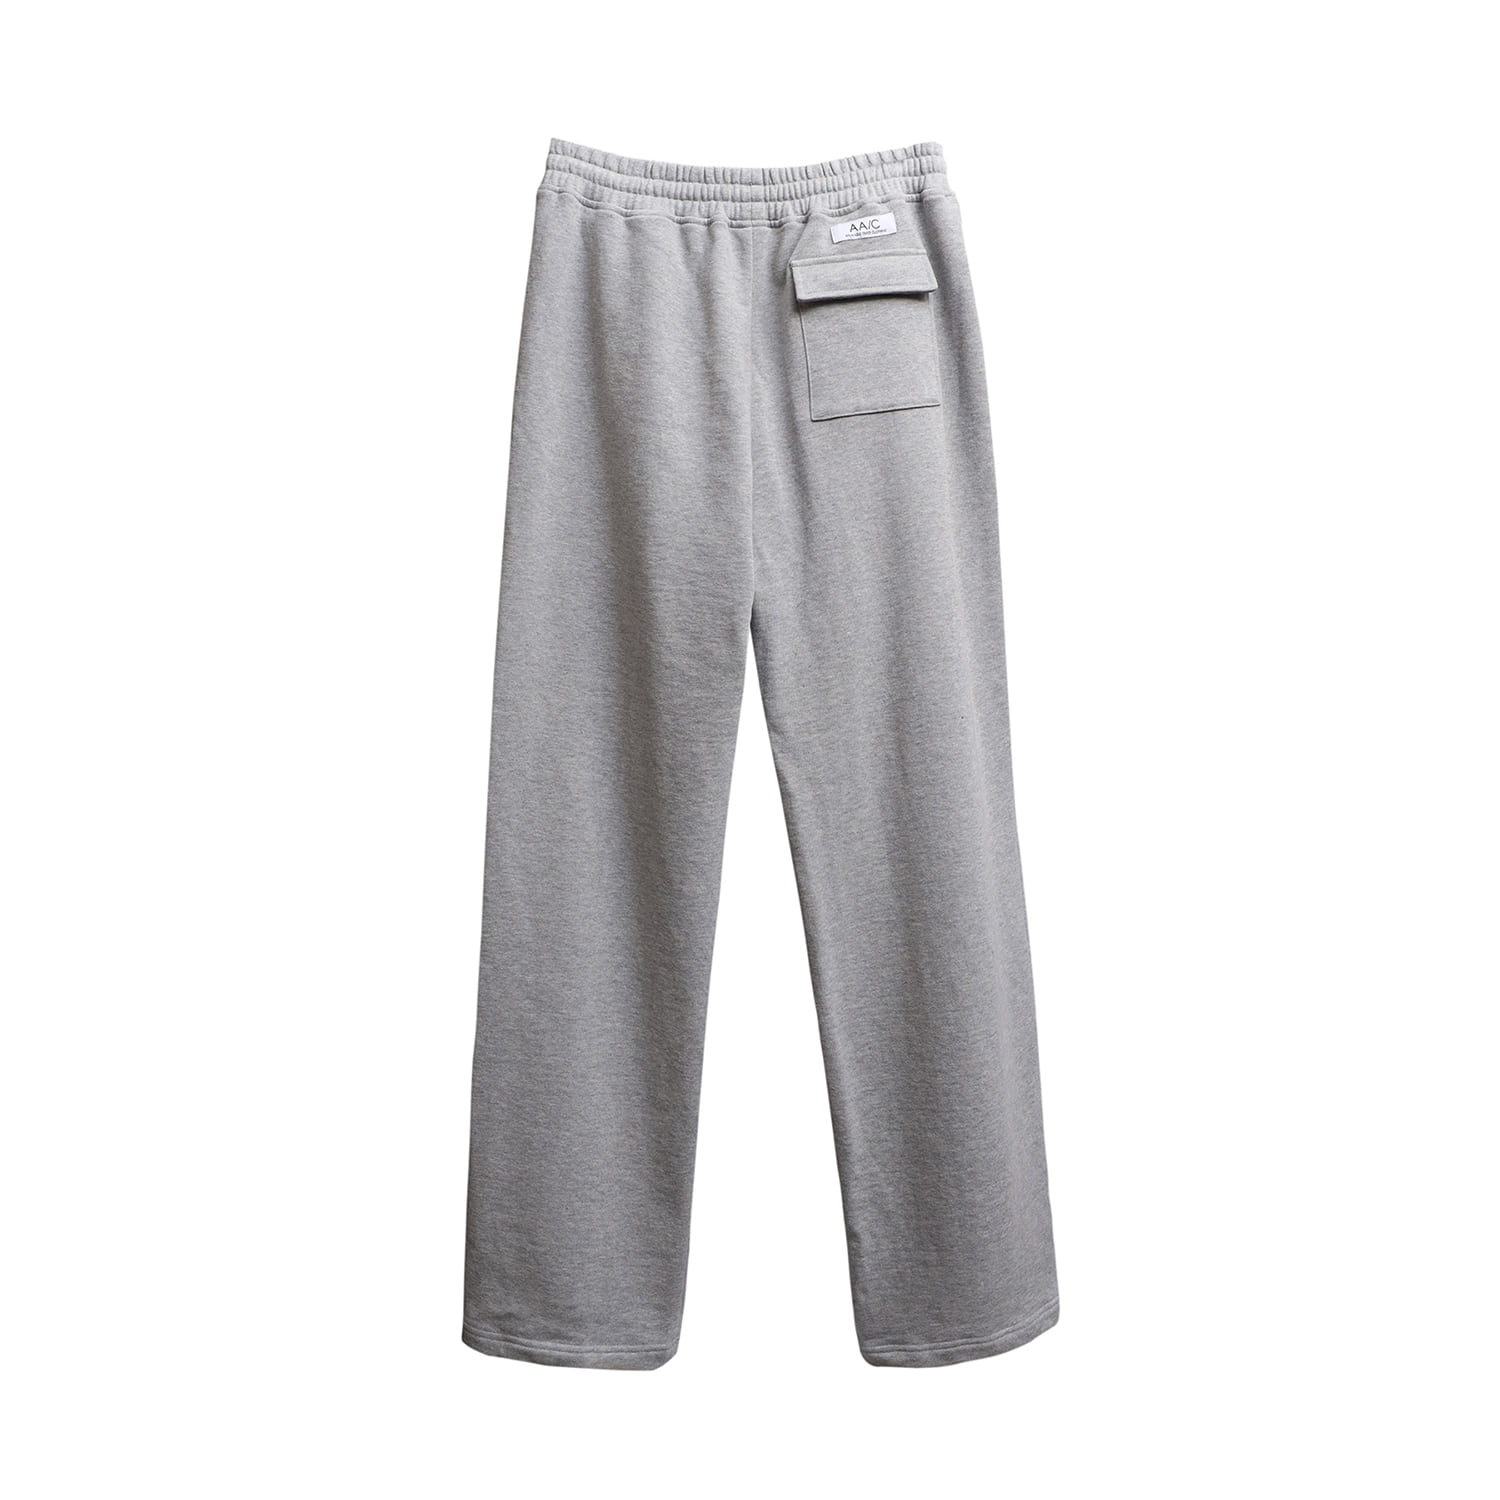 Pentagonal Pocket Sweat Pants (gray)